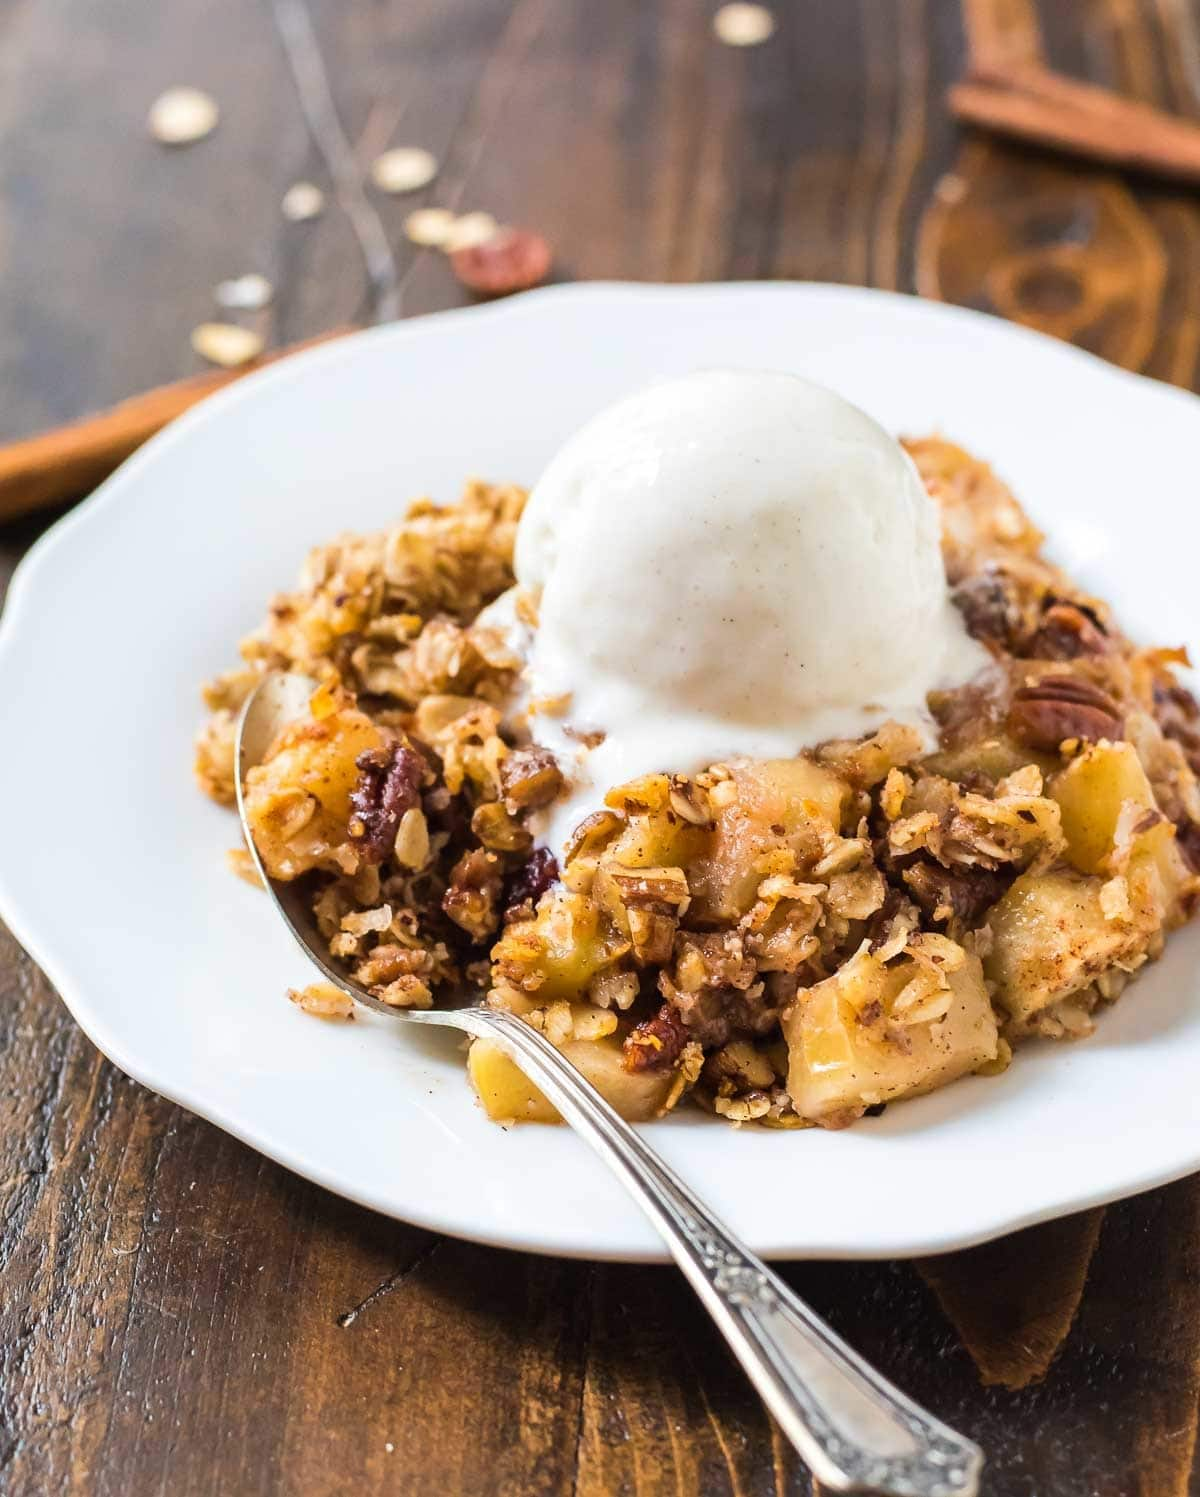 The BEST Vegan Apple Crisp. Easy, healthy recipe with pecans, oatmeal, coconut oil, and maple syrup. Gluten free and clean eating approved! @wellplated